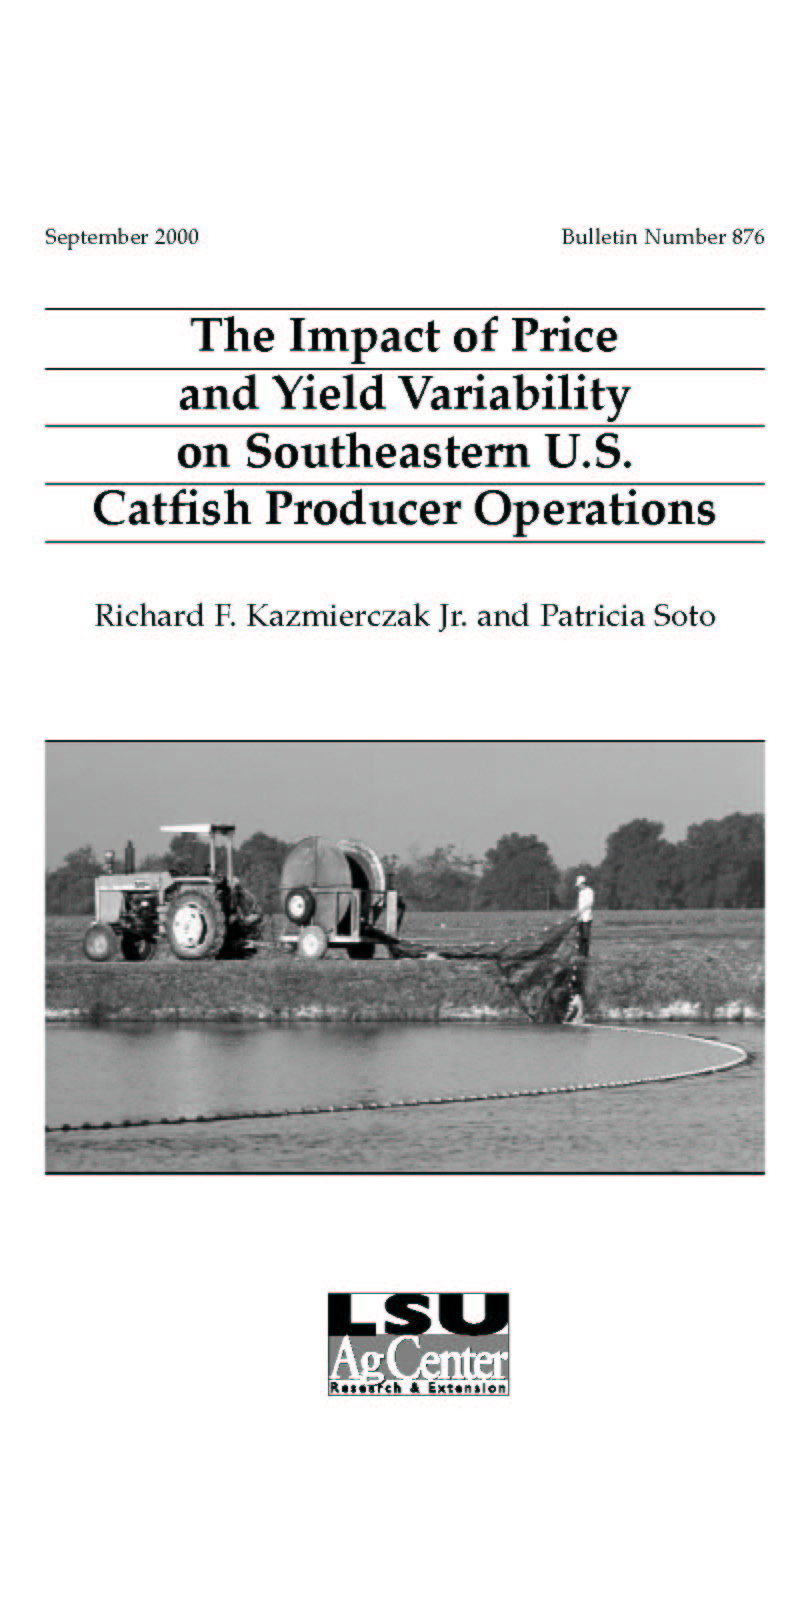 The Impact of Price and Yield Variability on Southeastern U.S. Catfish Producer Operations (September 2000)